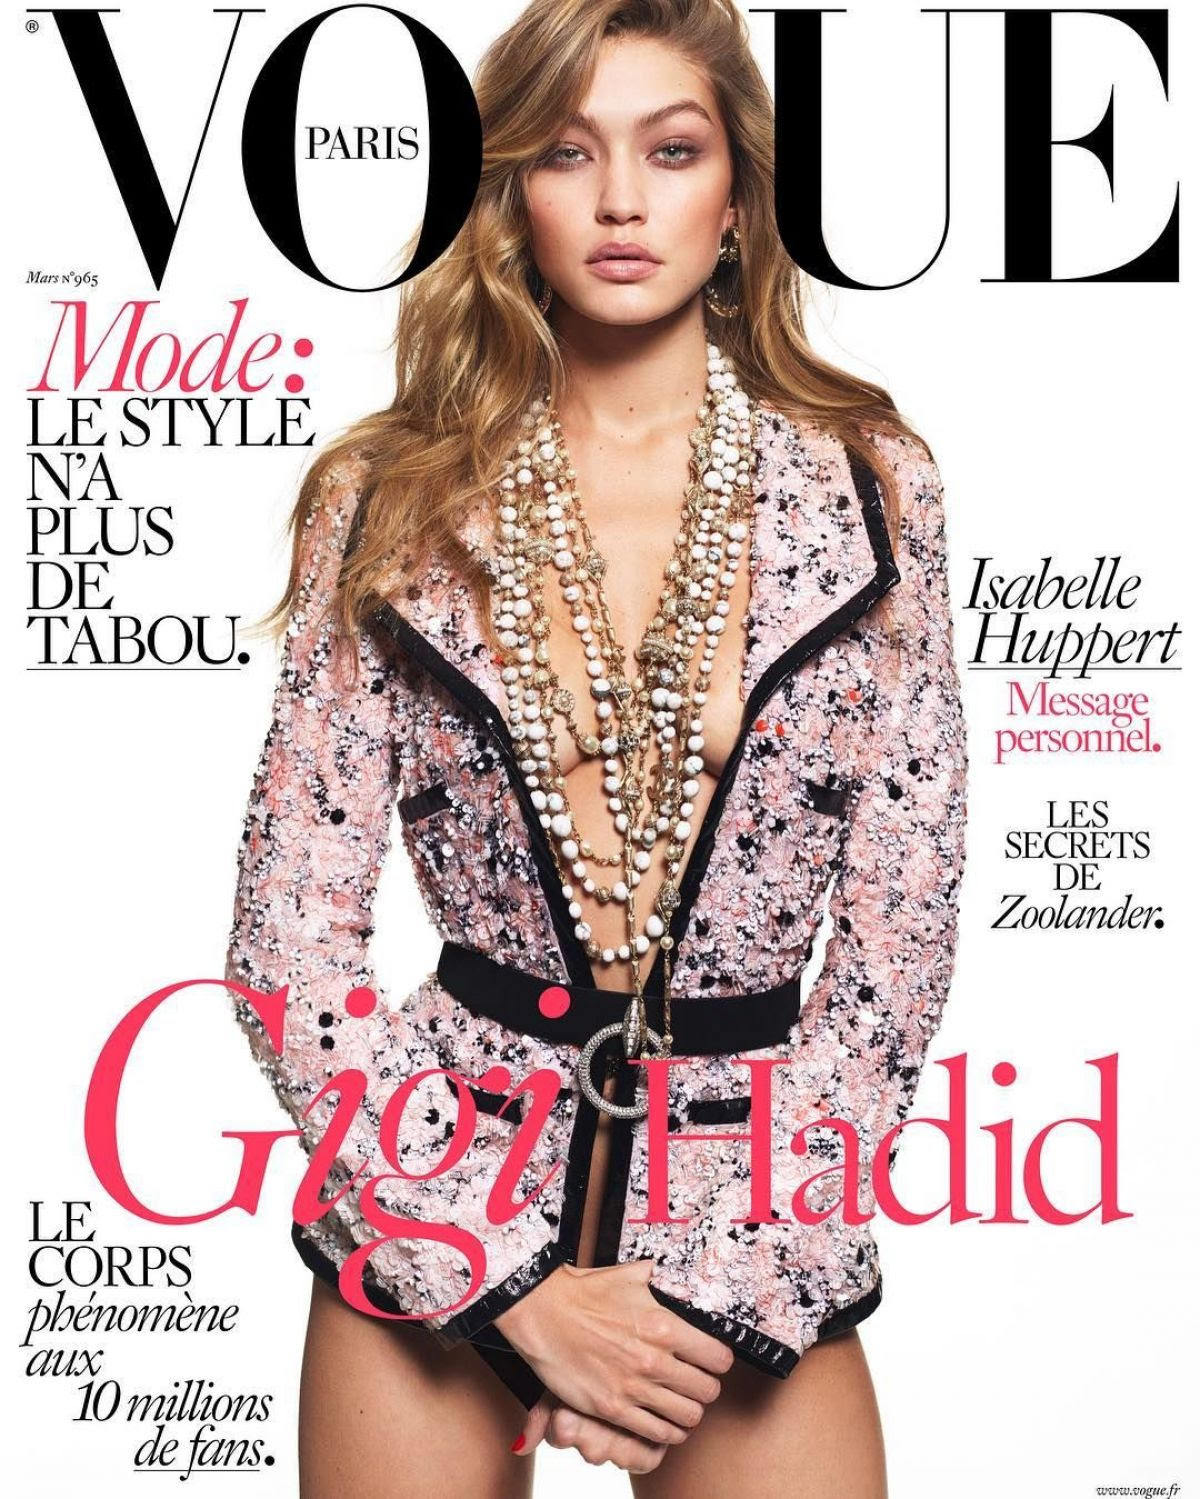 GIGI HADID on the Cover of Vogue Magazine, March 2016